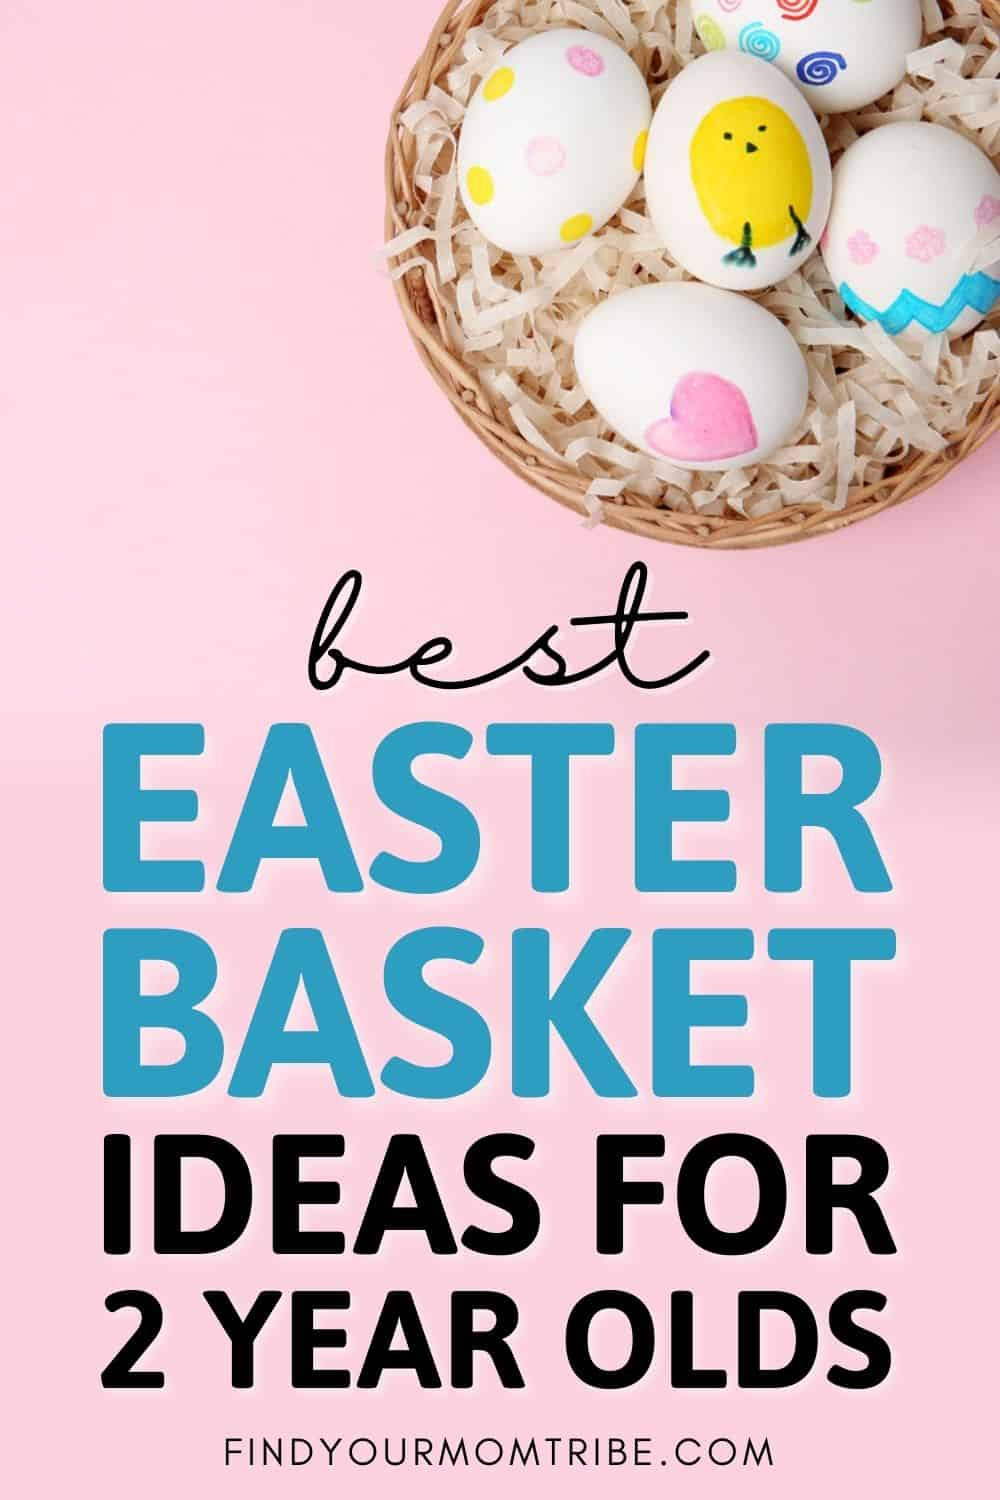 26 Best Ideas For An Easter Basket For 2 Year Olds Pinterest